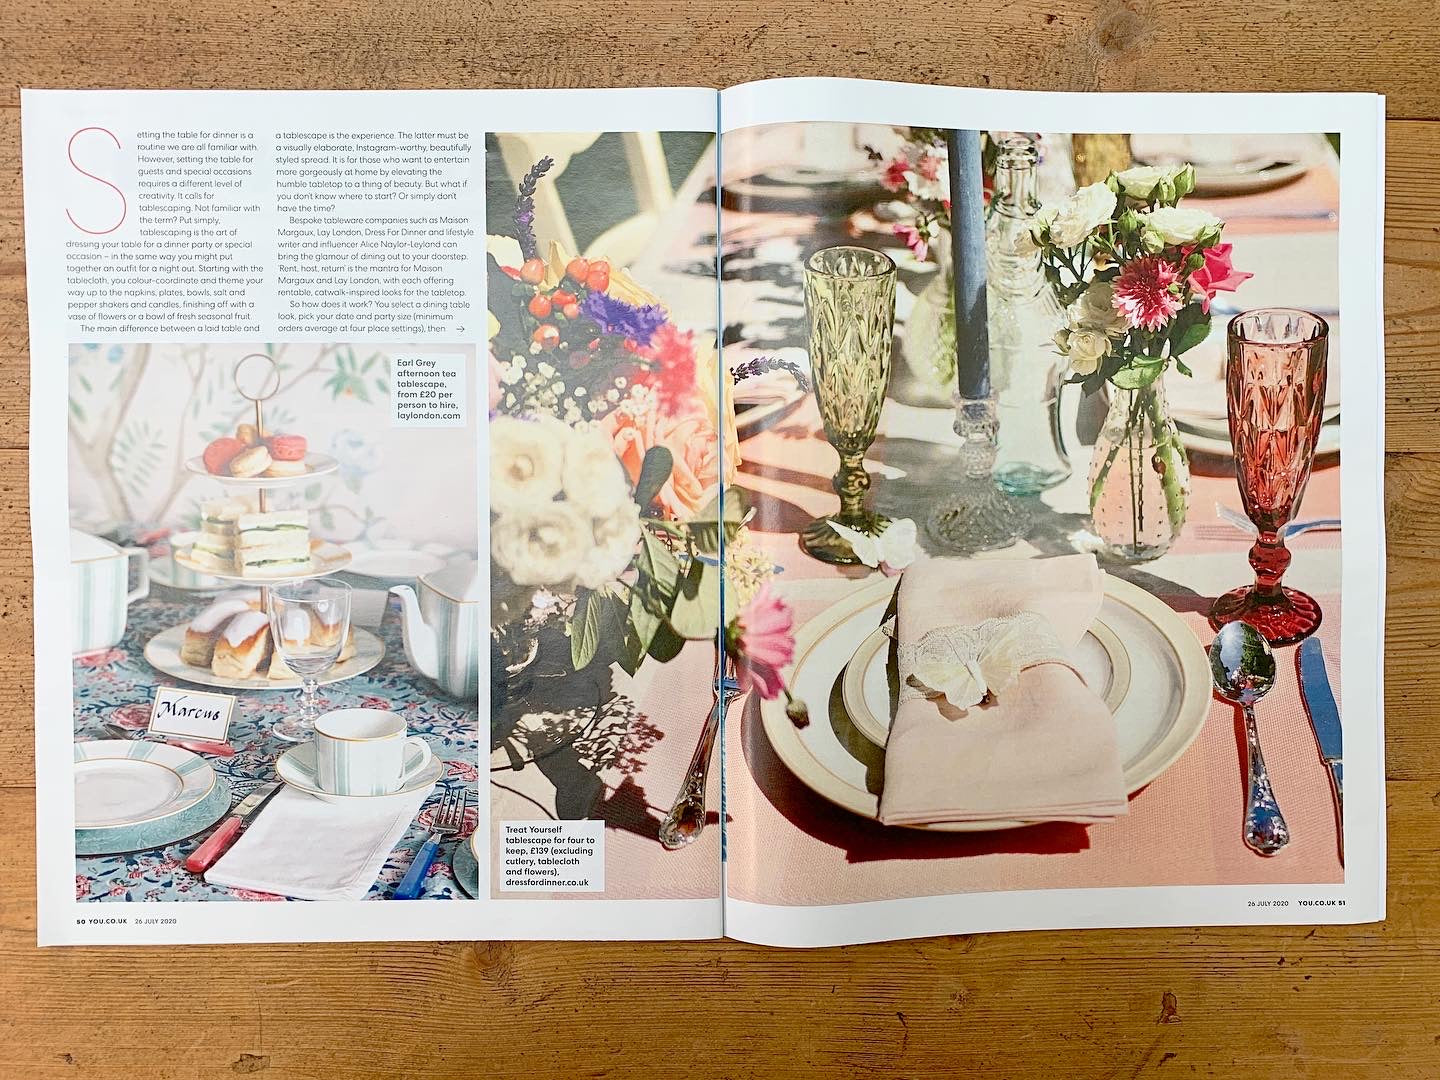 You magazine article about Dress for Dinner tablescapes. Beautiful large picture featuring our lovely products